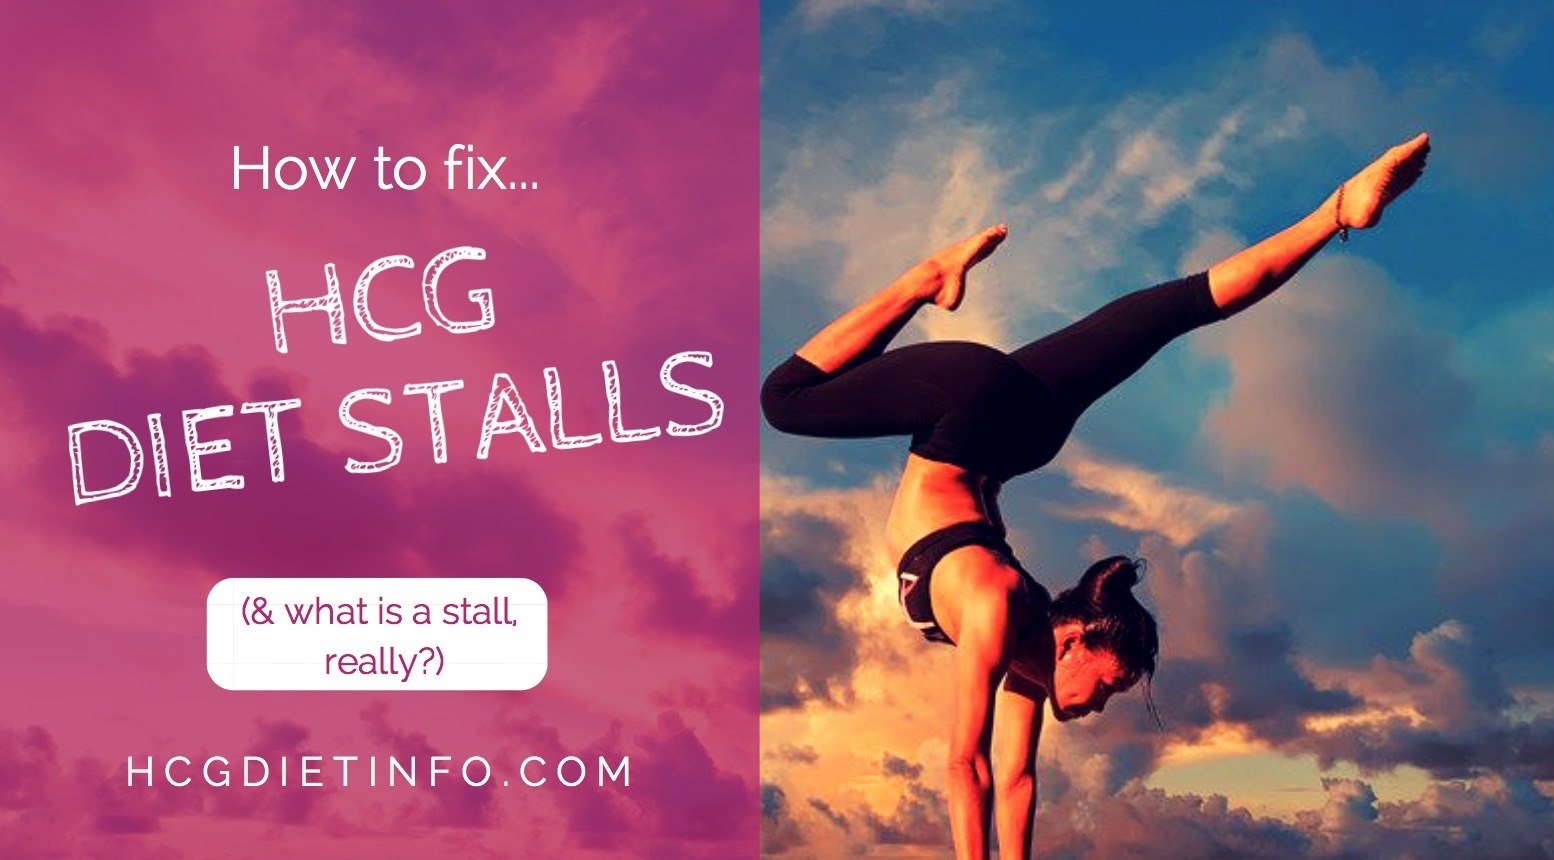 Hcg Diet stalls and plateaus - what is, and how to fix